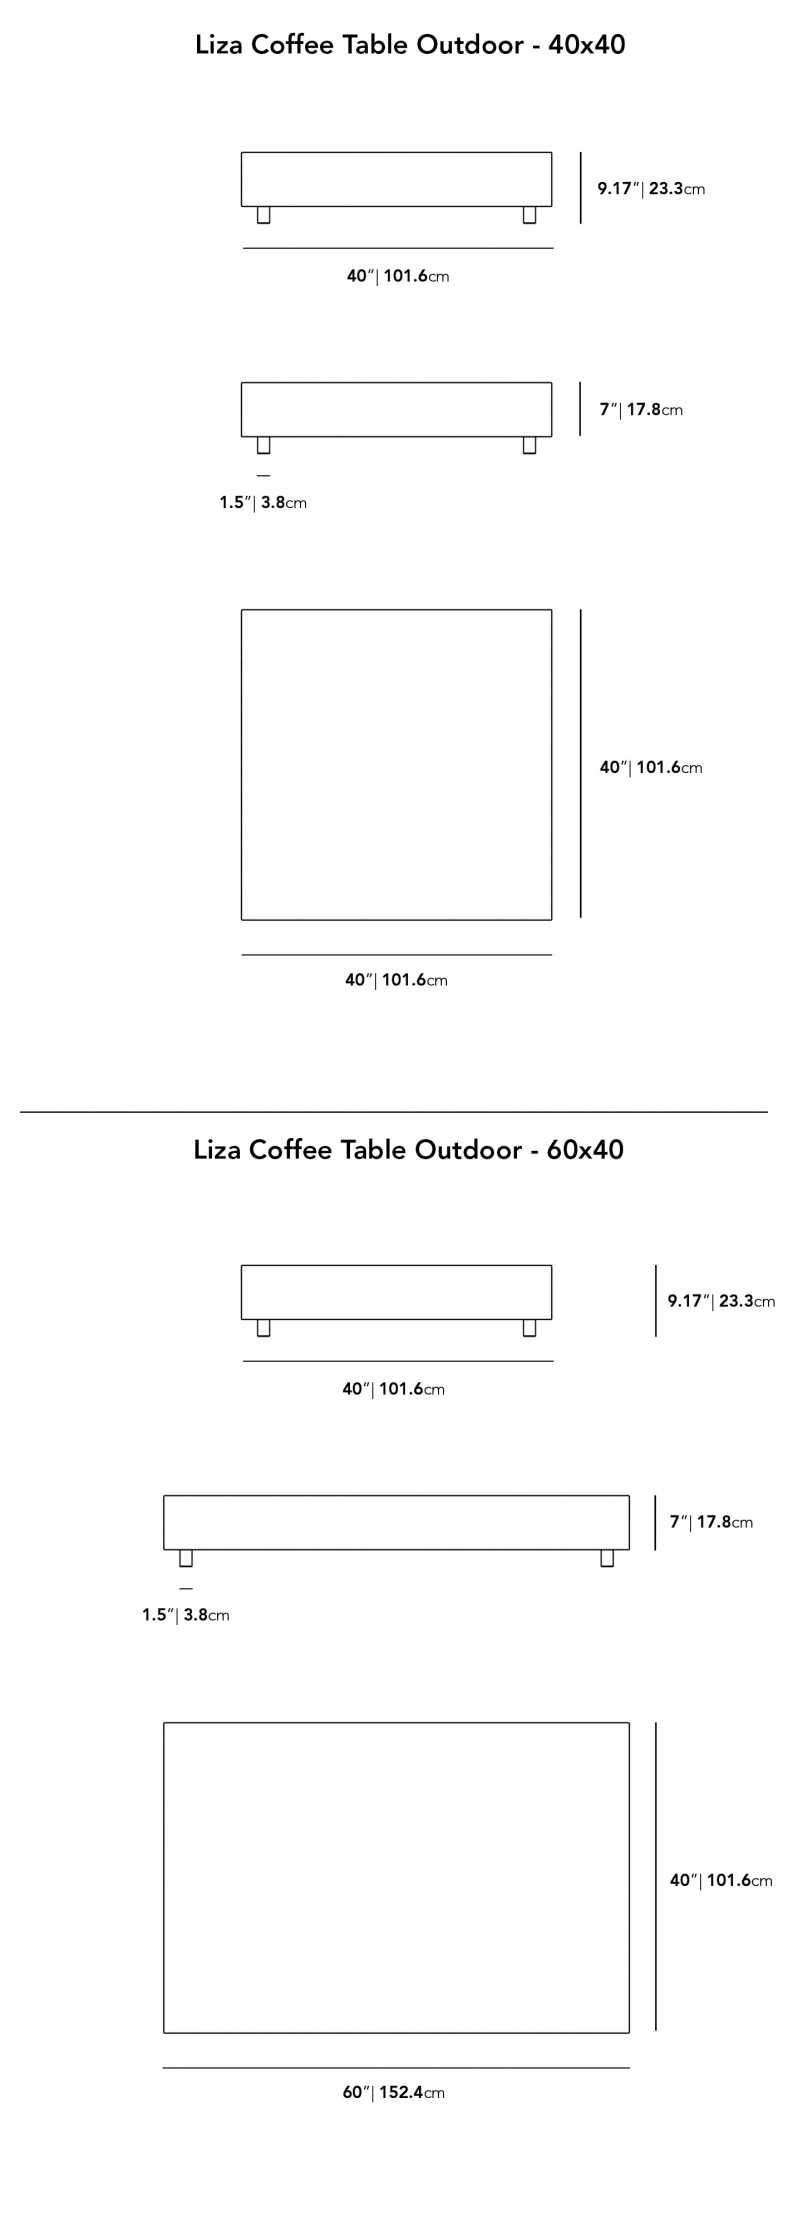 Dimensions for Liza Outdoor Coffee Table